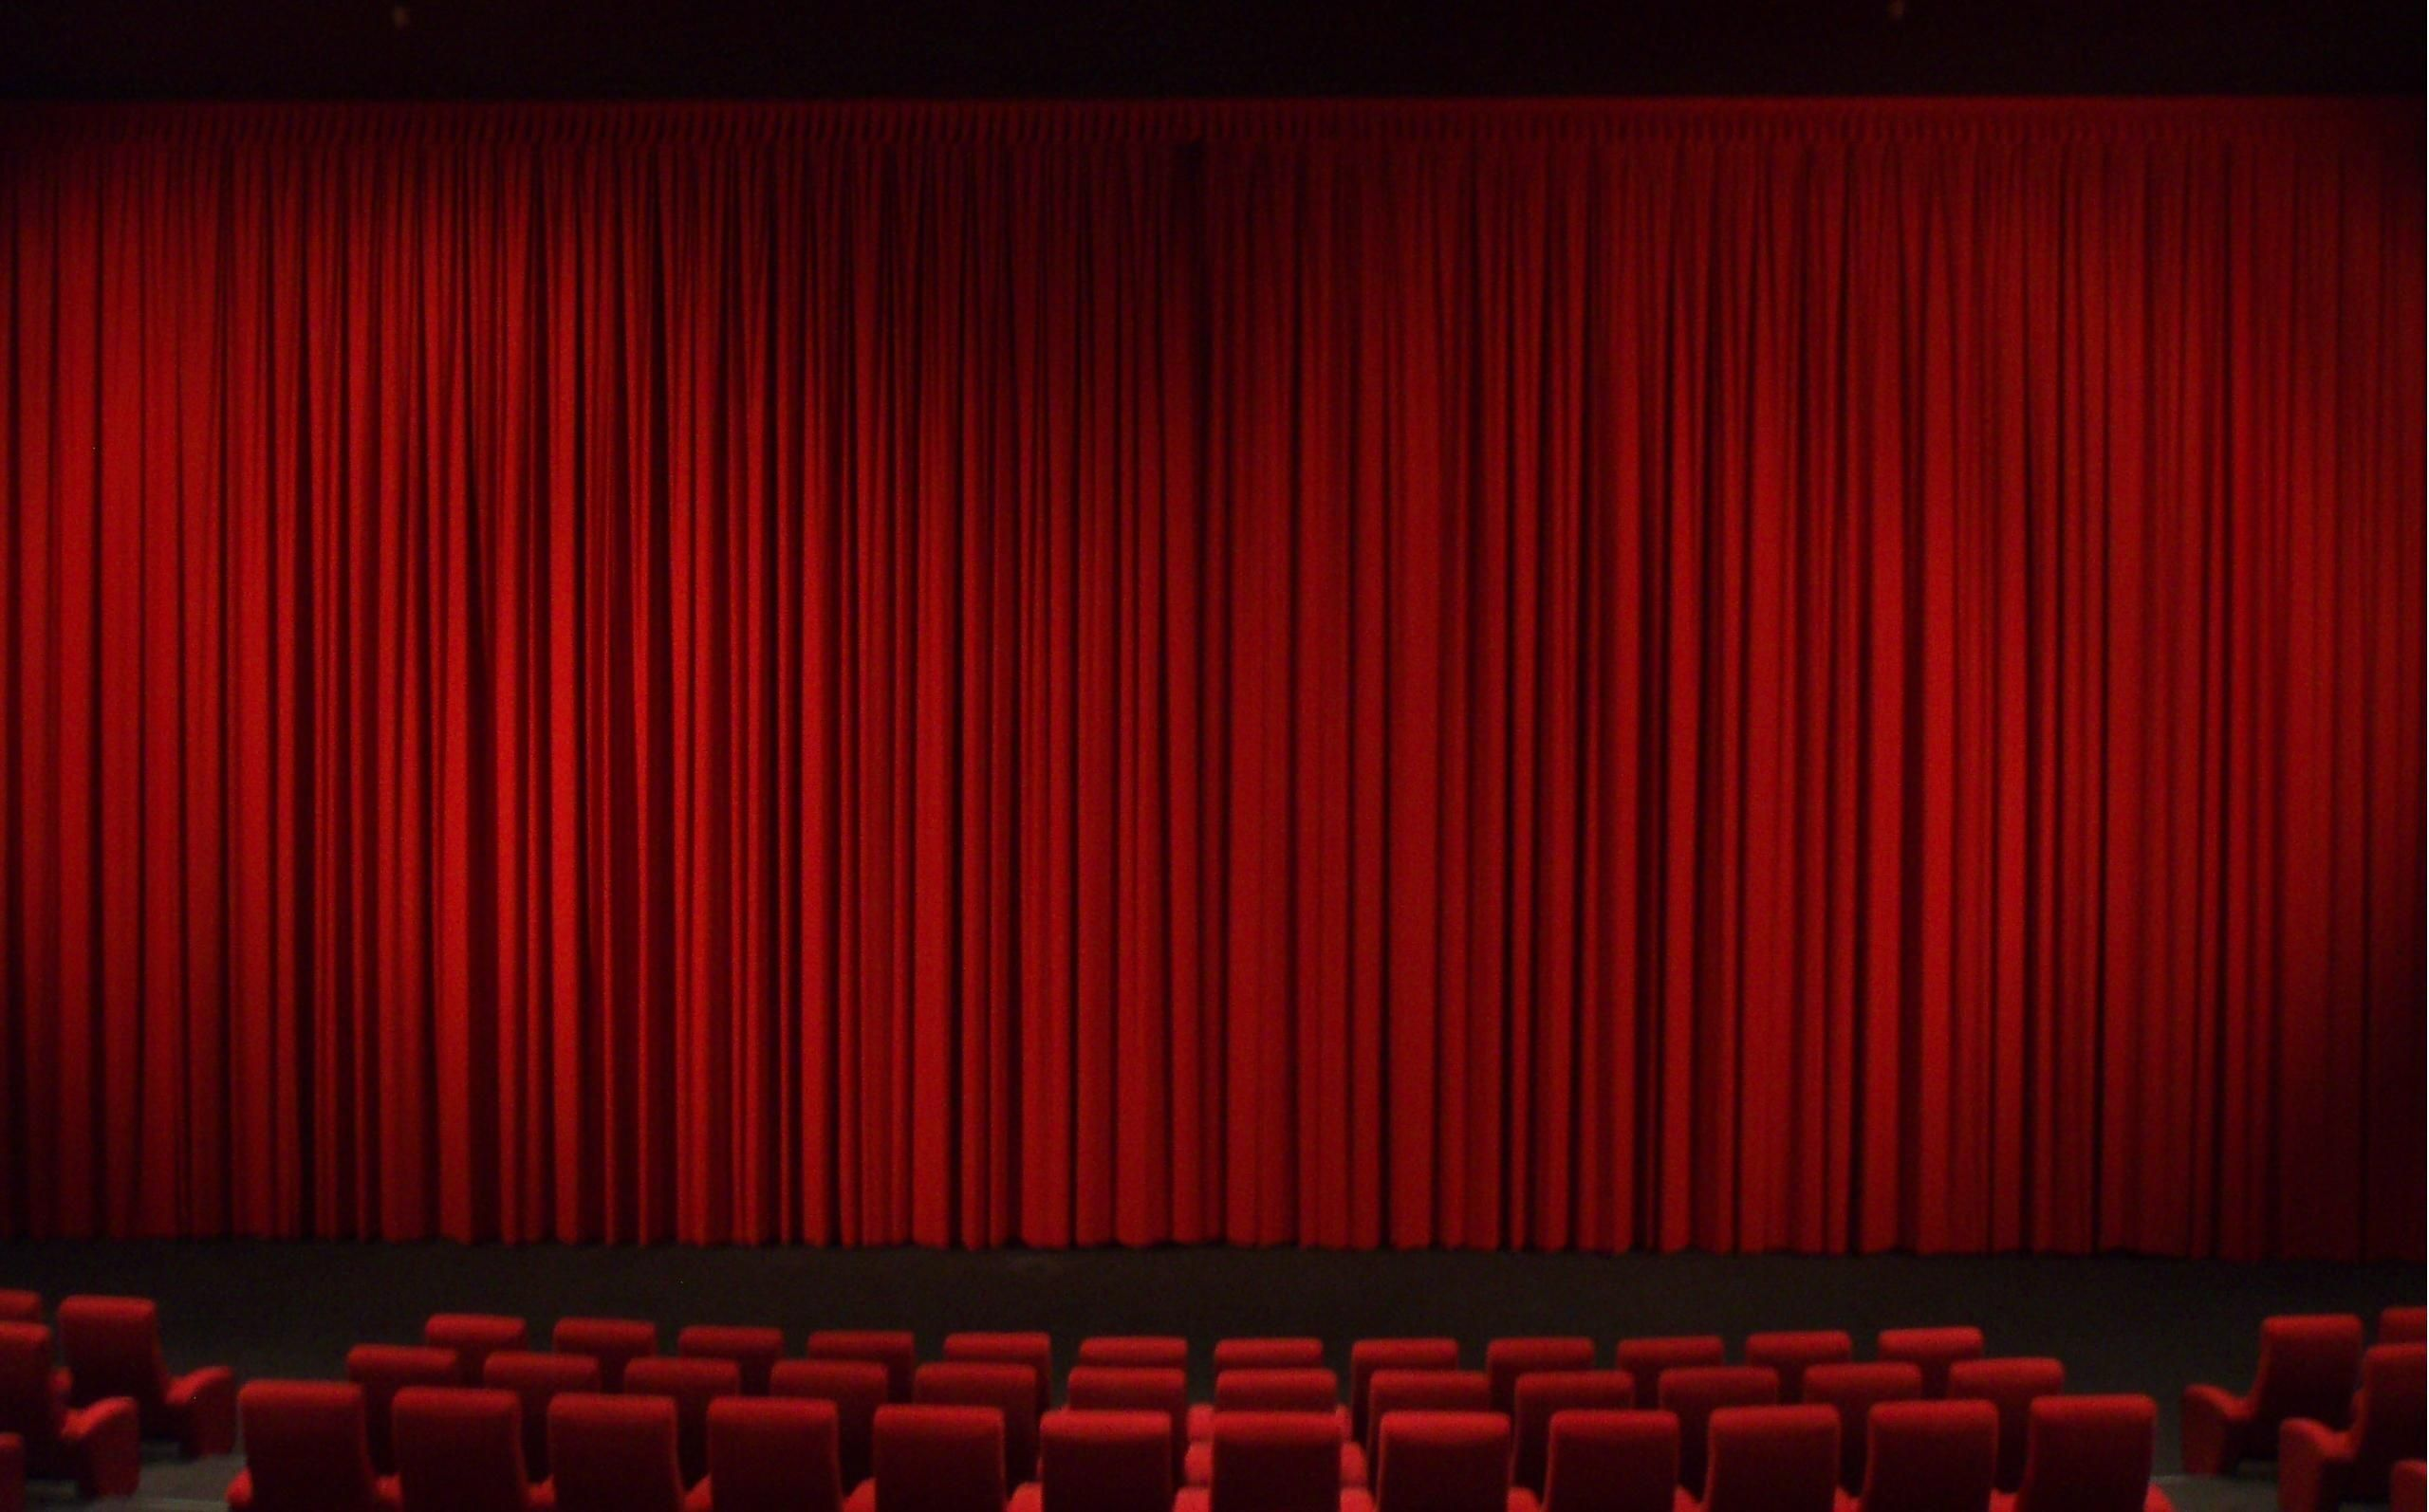 Movie Theater Wallpapers Top Free Movie Theater Backgrounds Wallpaperaccess